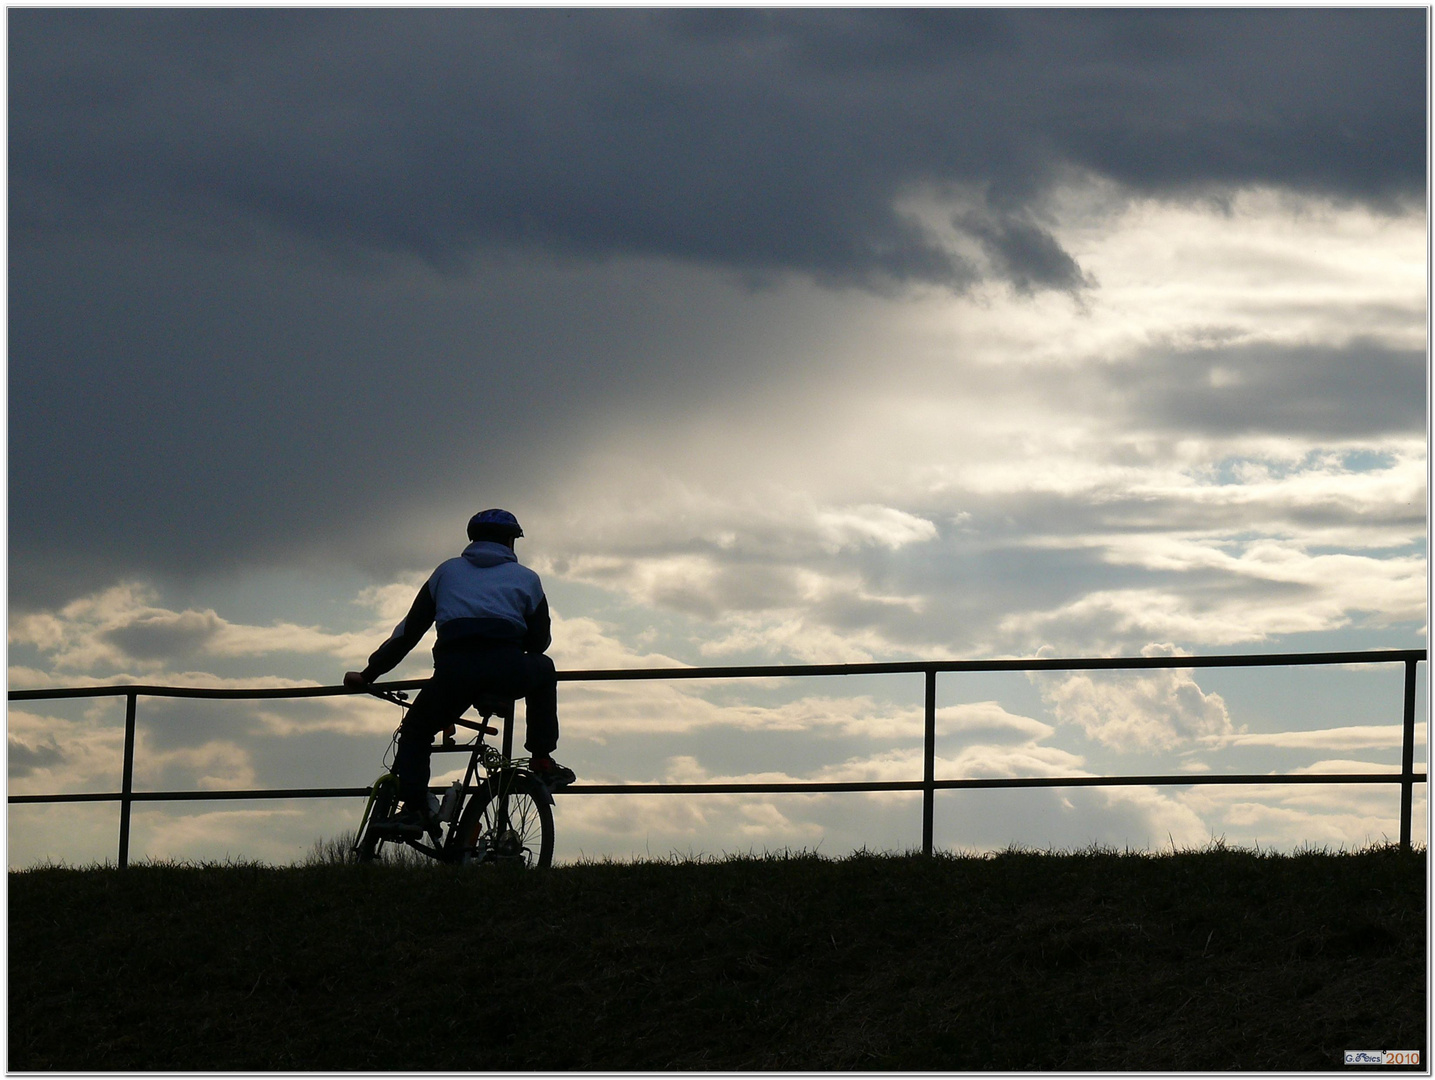 A biker and the sky